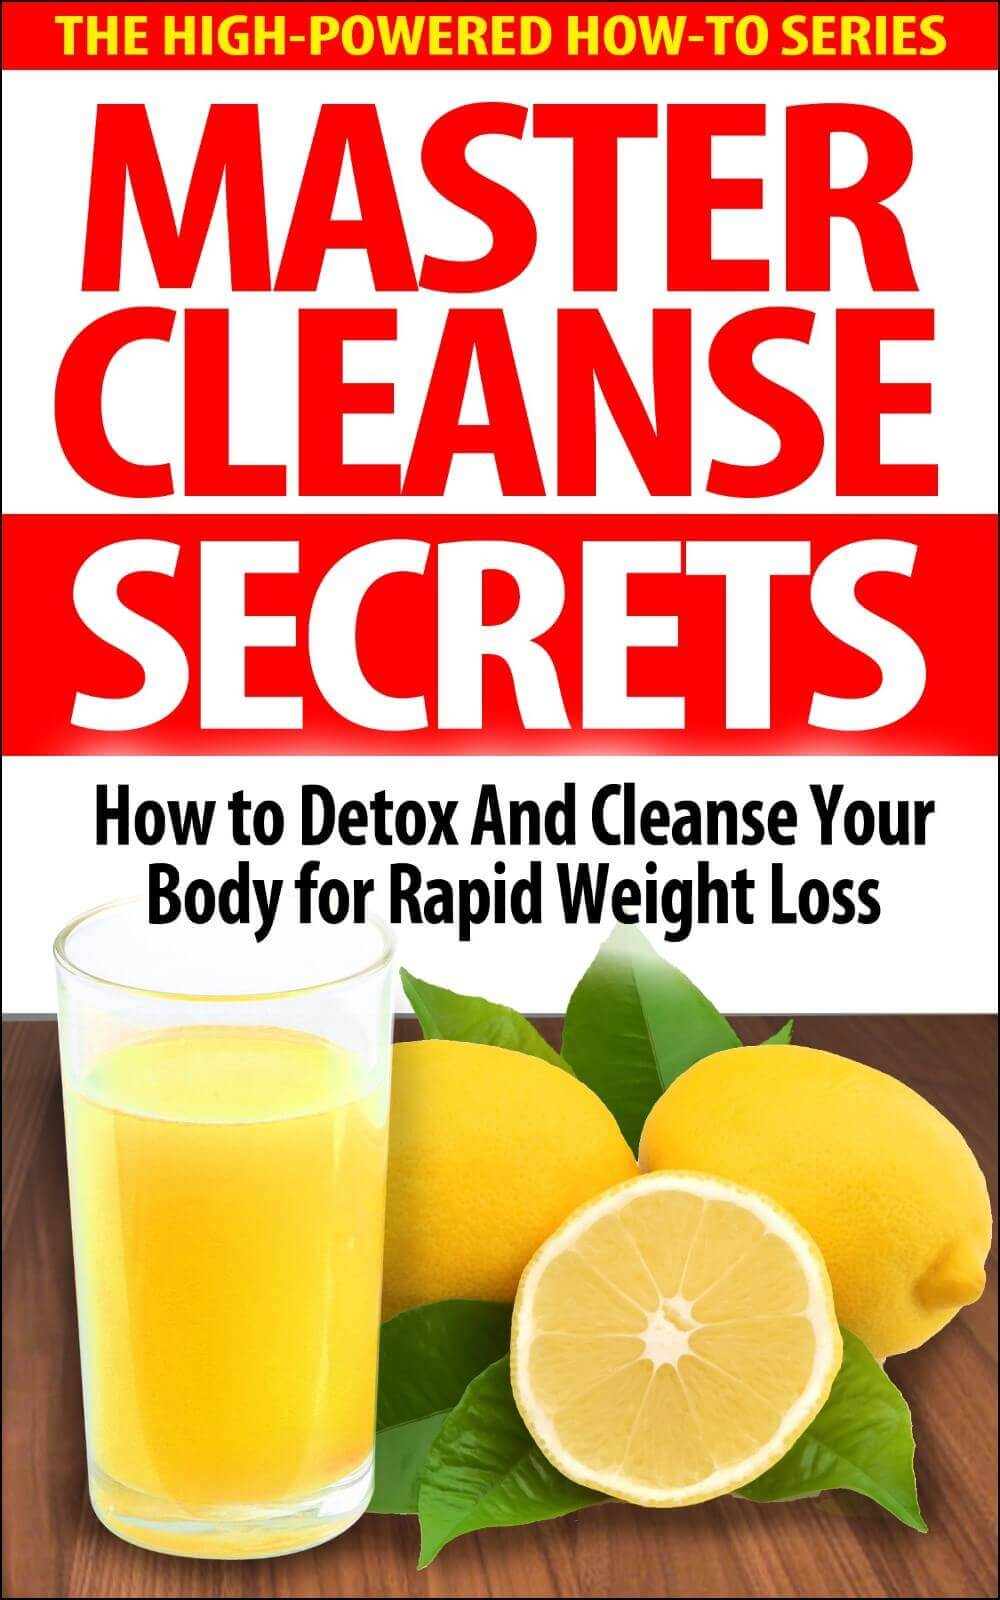 Master Cleanse Secrets Review – Must Knowing Before You Buy